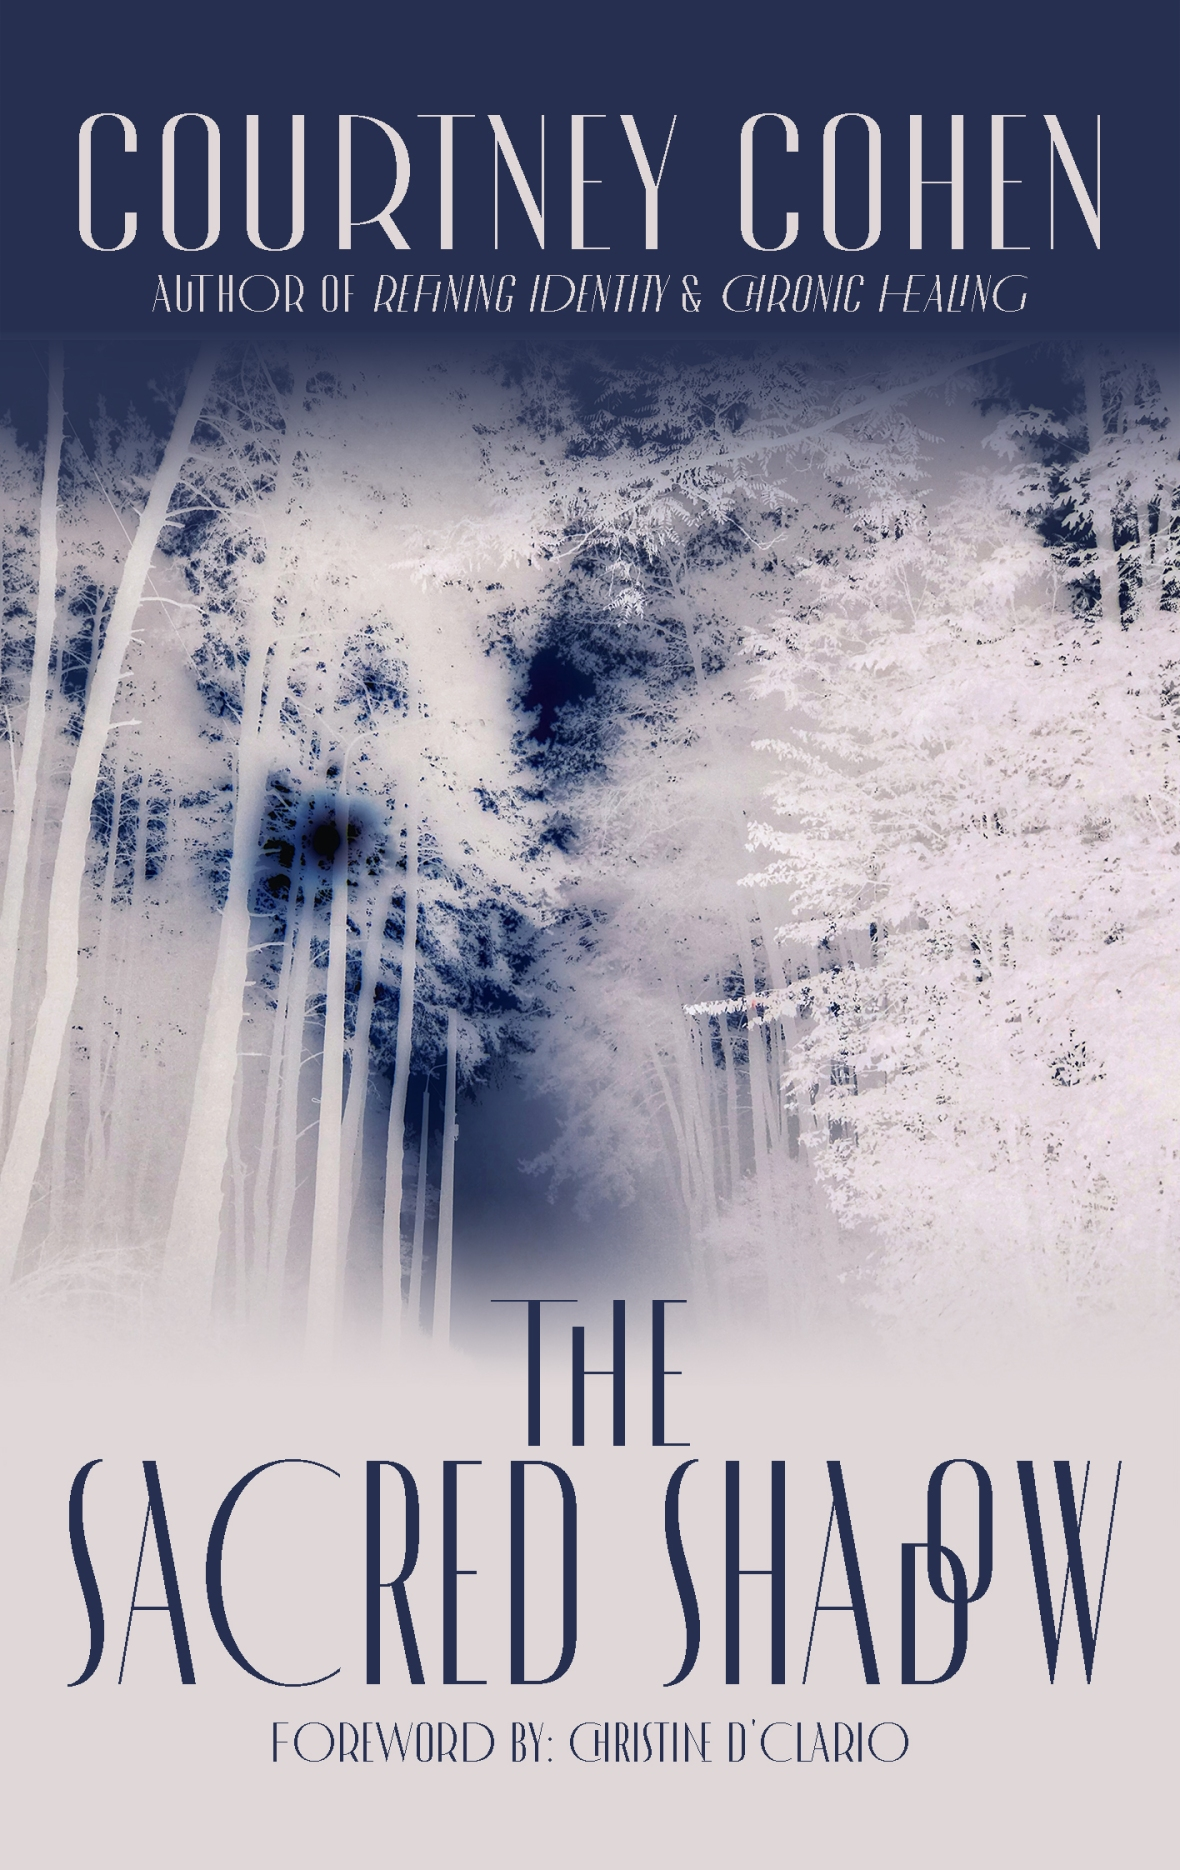 1568480556006_0_Sacred-Shadow-Inverted-Trees-Front-Cover.jpg